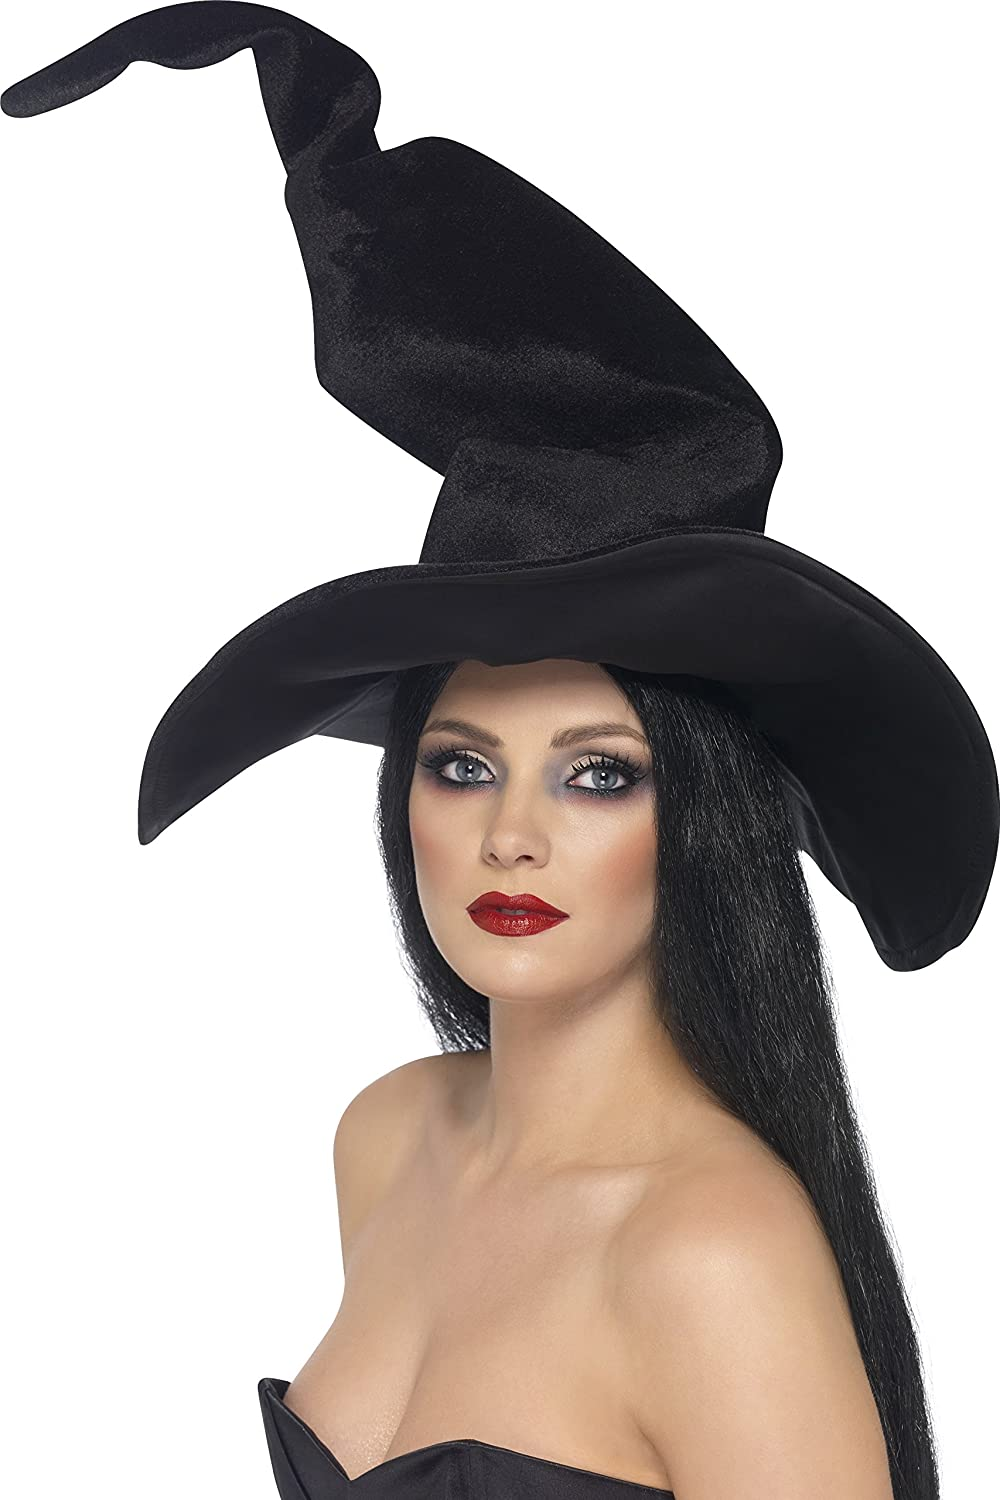 Smiffy's Witch Hat, Tall and Twisty Velour - Black: Smiffys ...